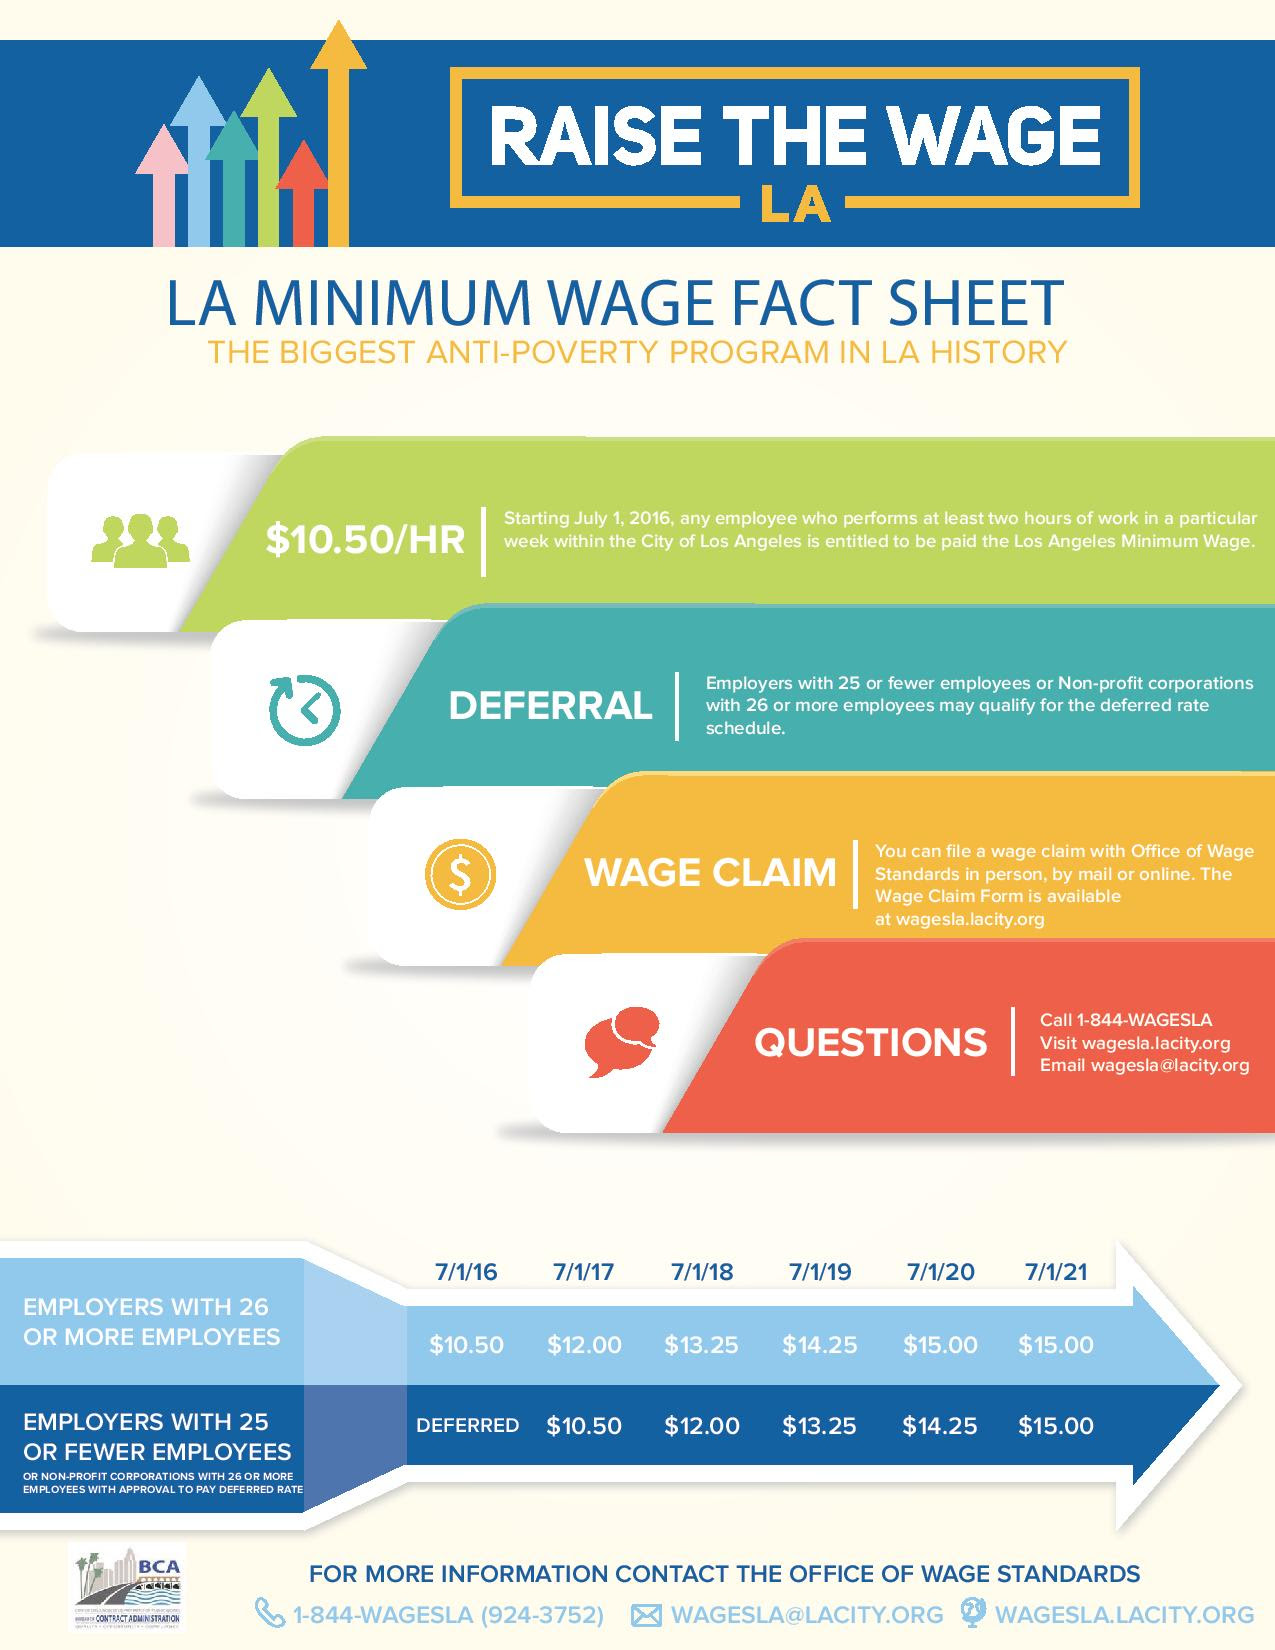 the need for raise on our minimum wage